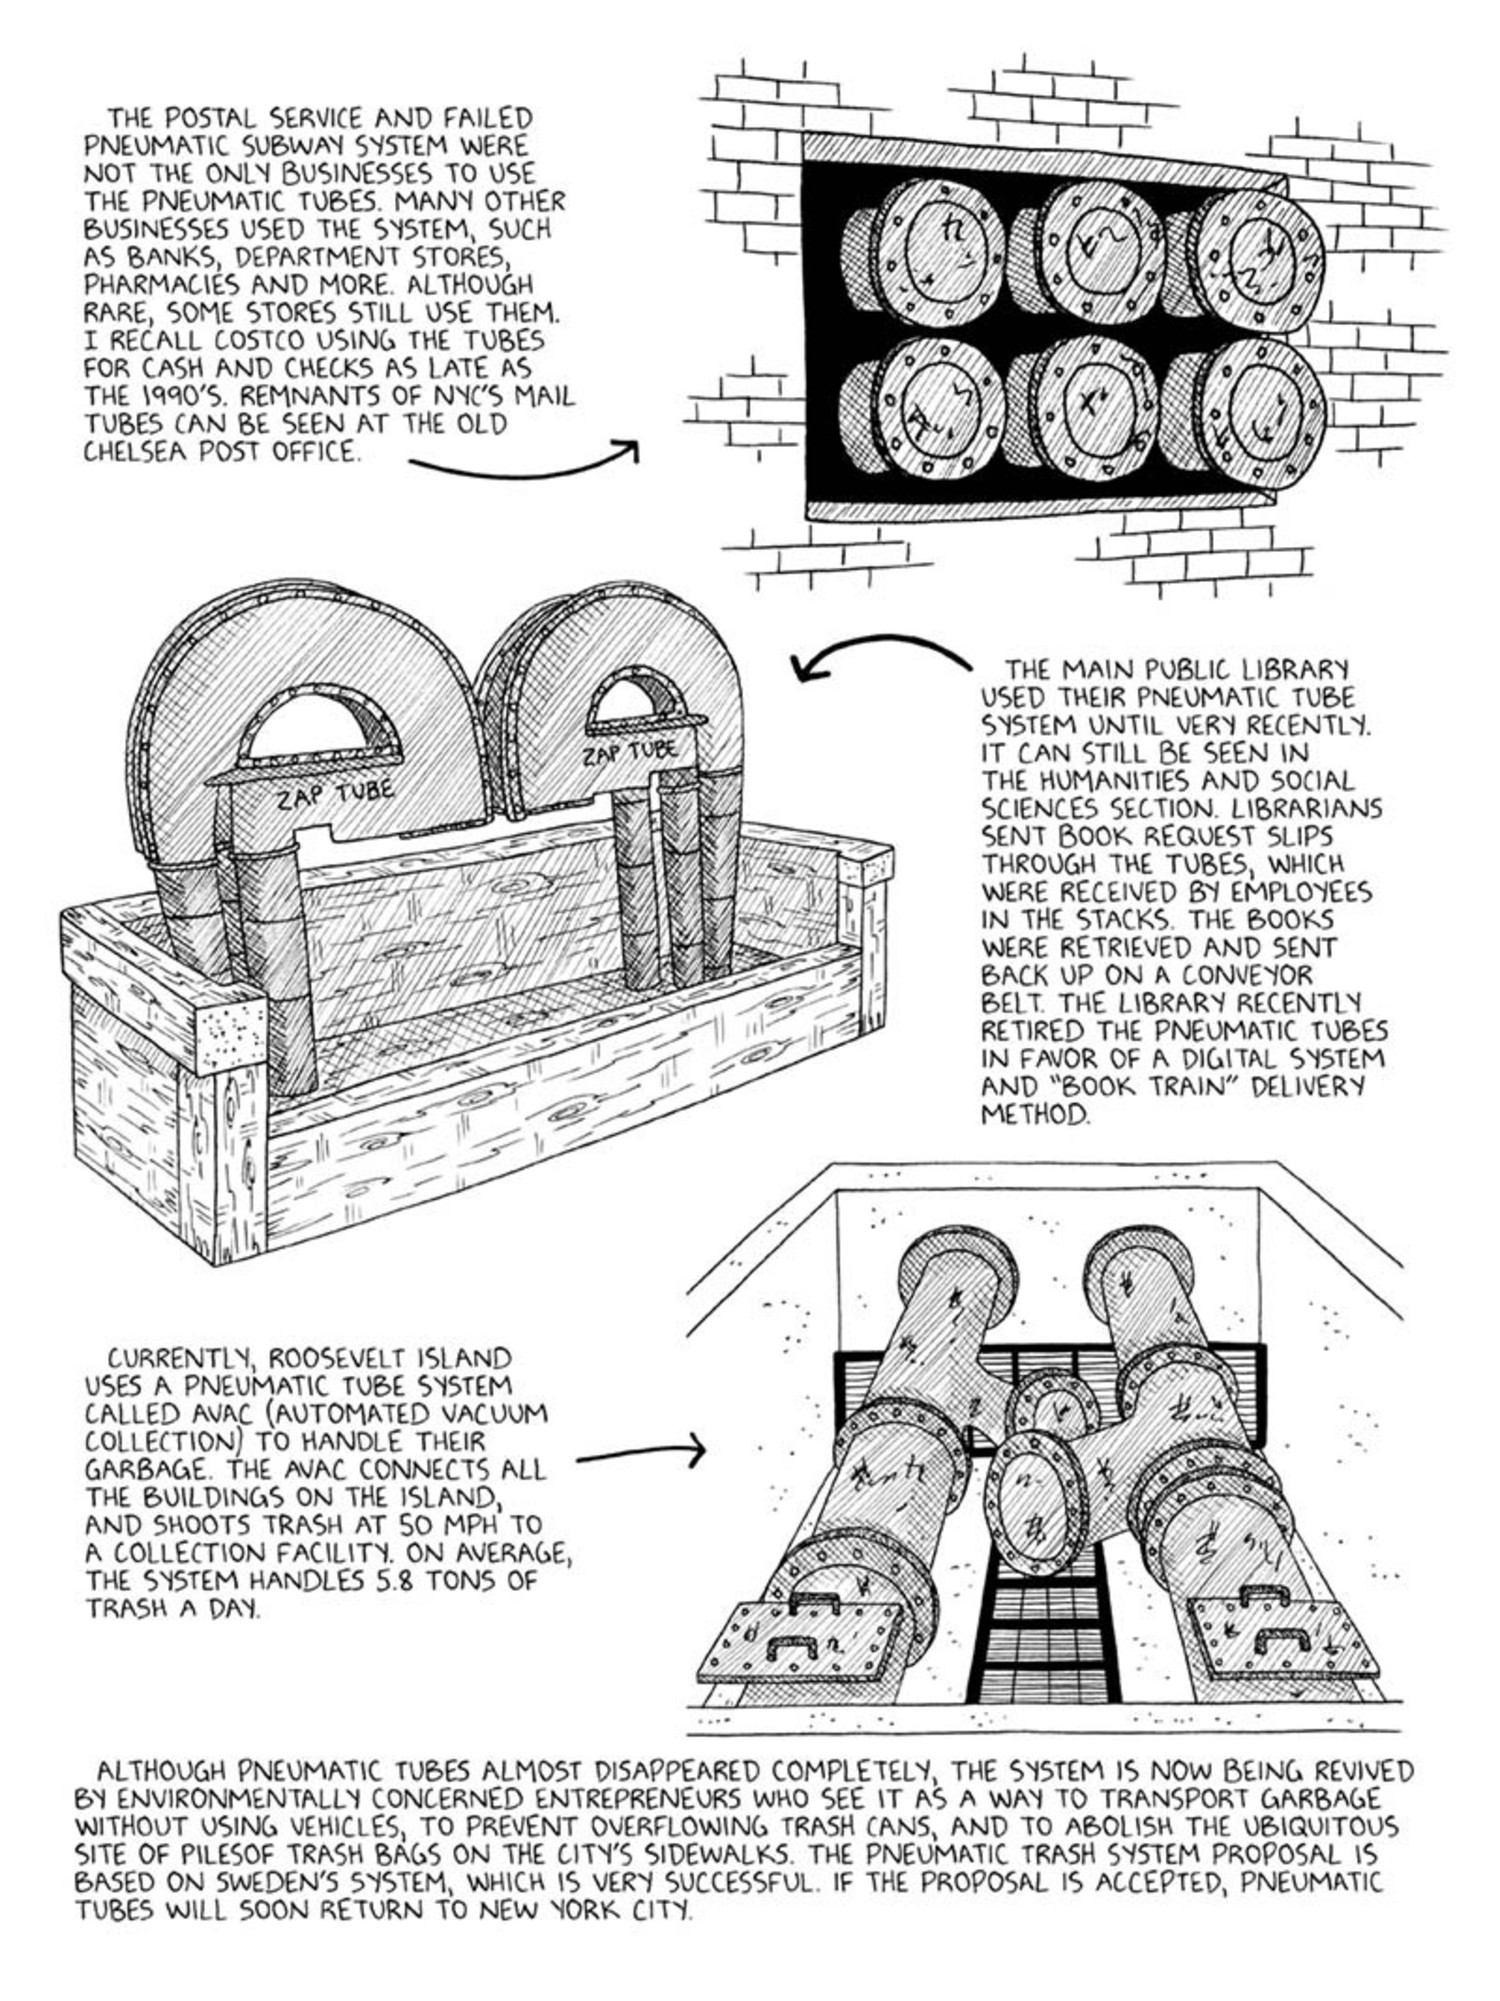 """A History of New York City's Pneumatic Tubes. From """"Tenements, Towers & Trash: An Unconventional Illustrated History of New York City"""", Julia Wertz, 2017"""